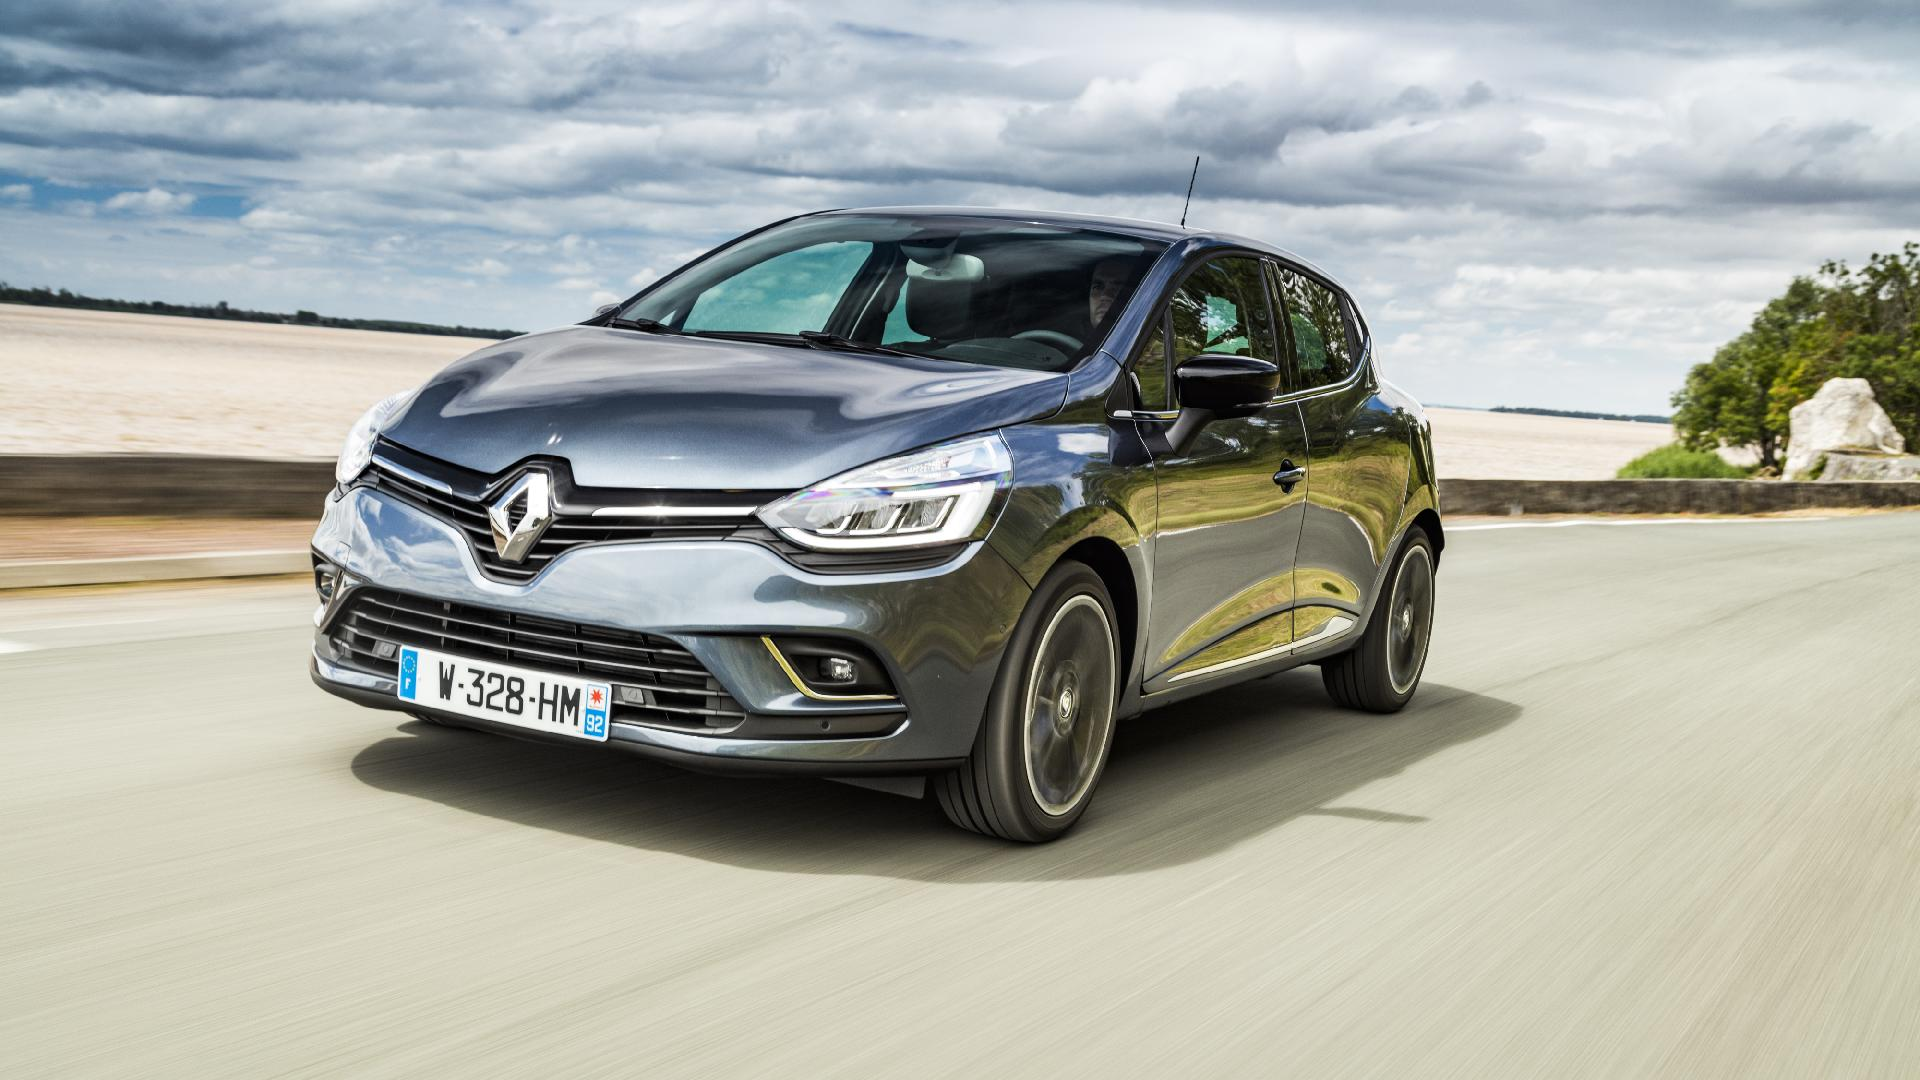 RENAULT Clio 0.9 Energy TCe Limited